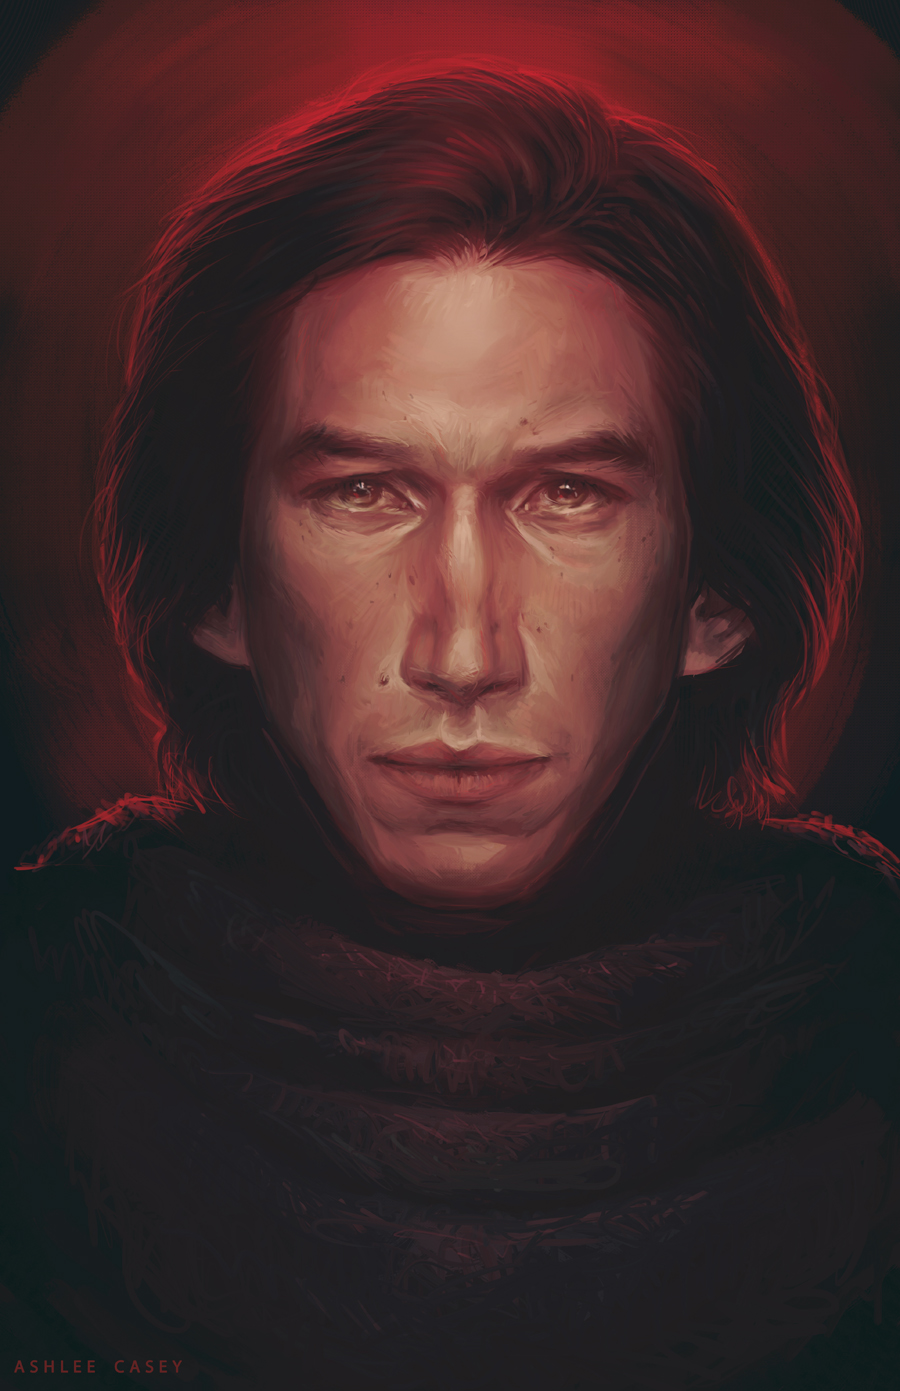 """Concrete Walls"" – Kylo Ren from The Force Awakens by Ashlee Casey"